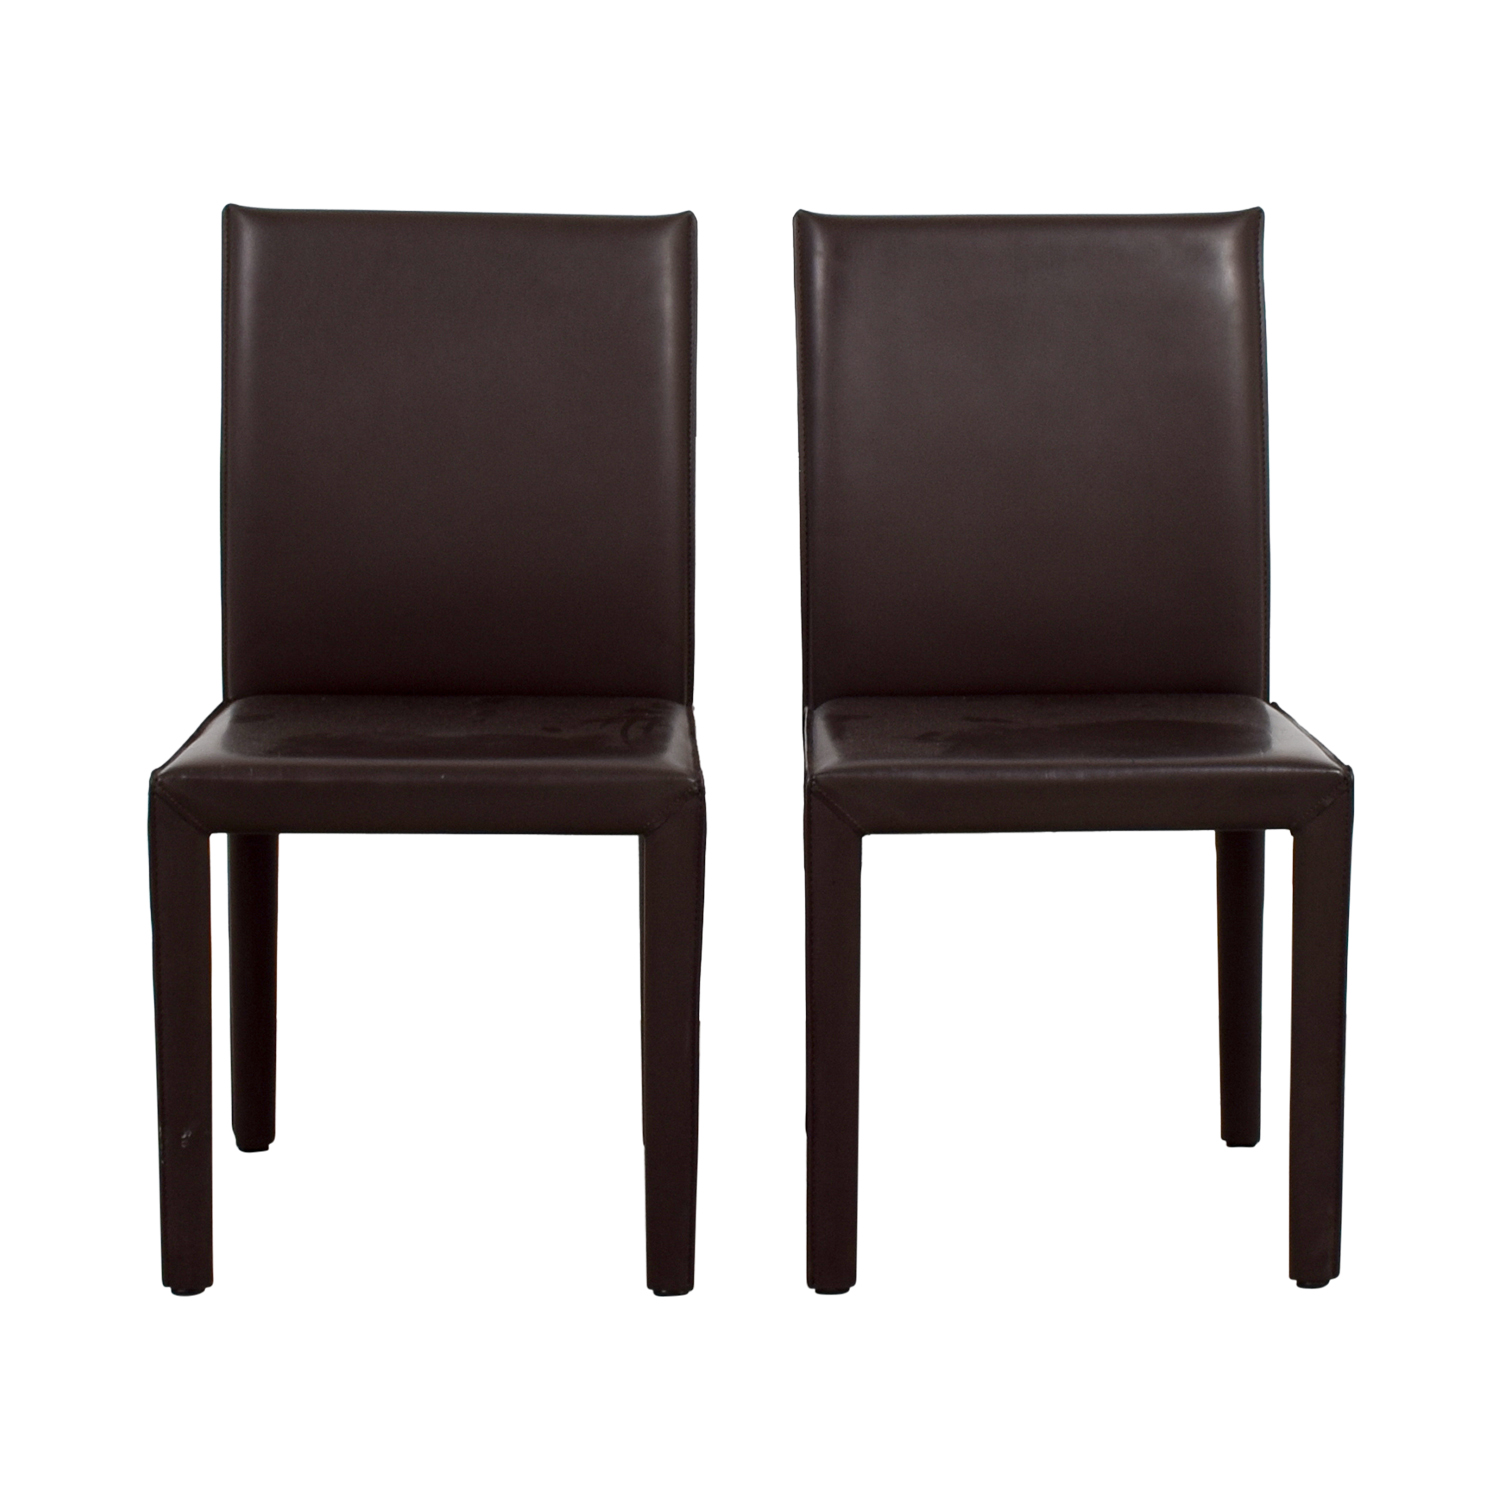 Leather Dining Chairs 90 Off Maria Yee Maria Yee Mondo Brown Leather Dining